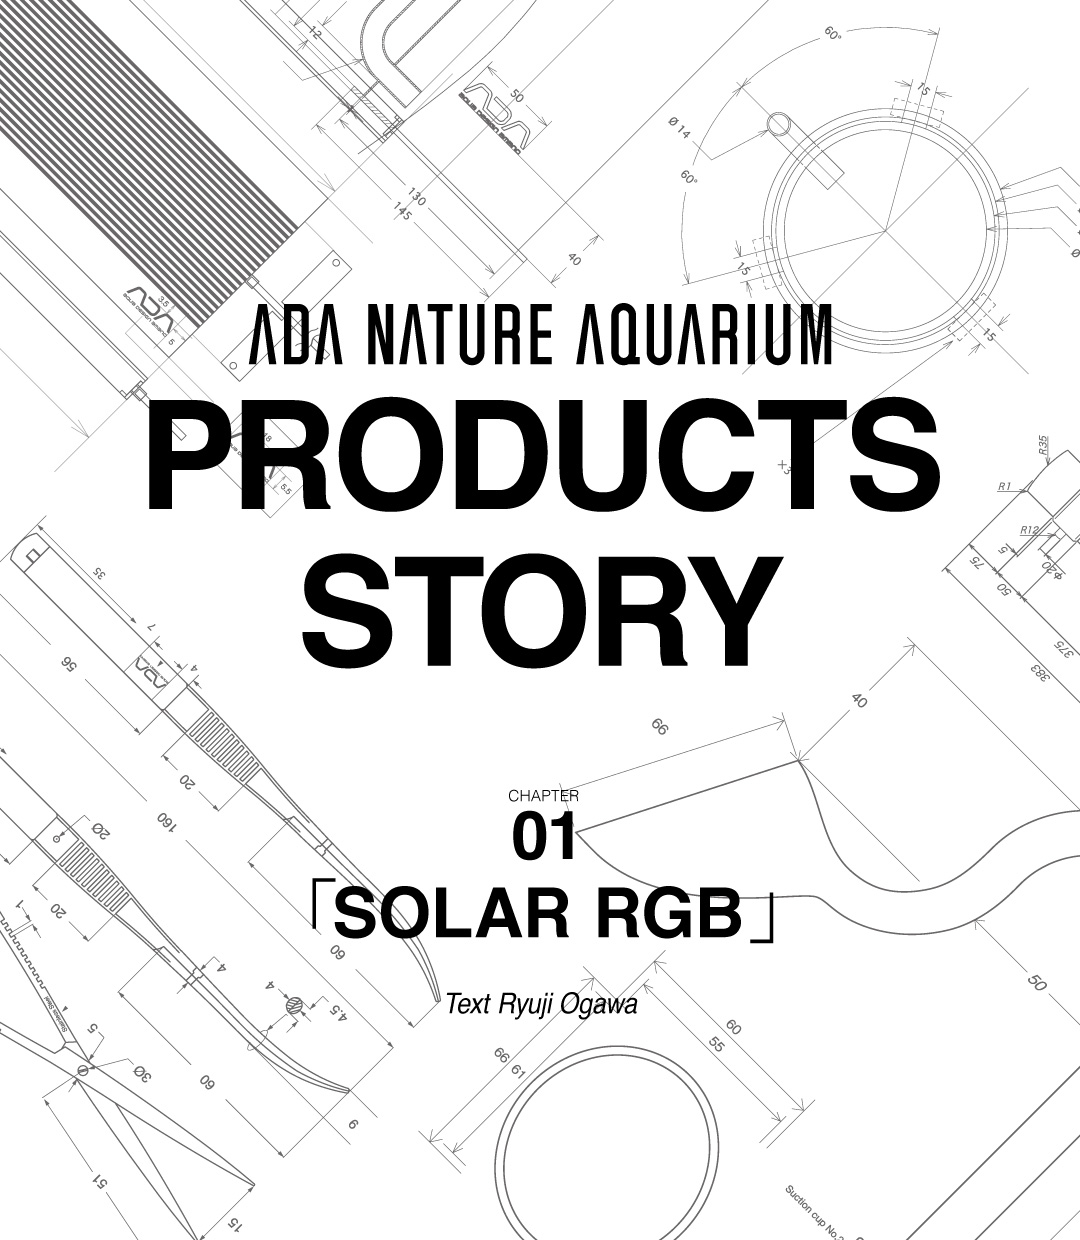 NA PRODUCTS STORY #01 SOLAR RGB